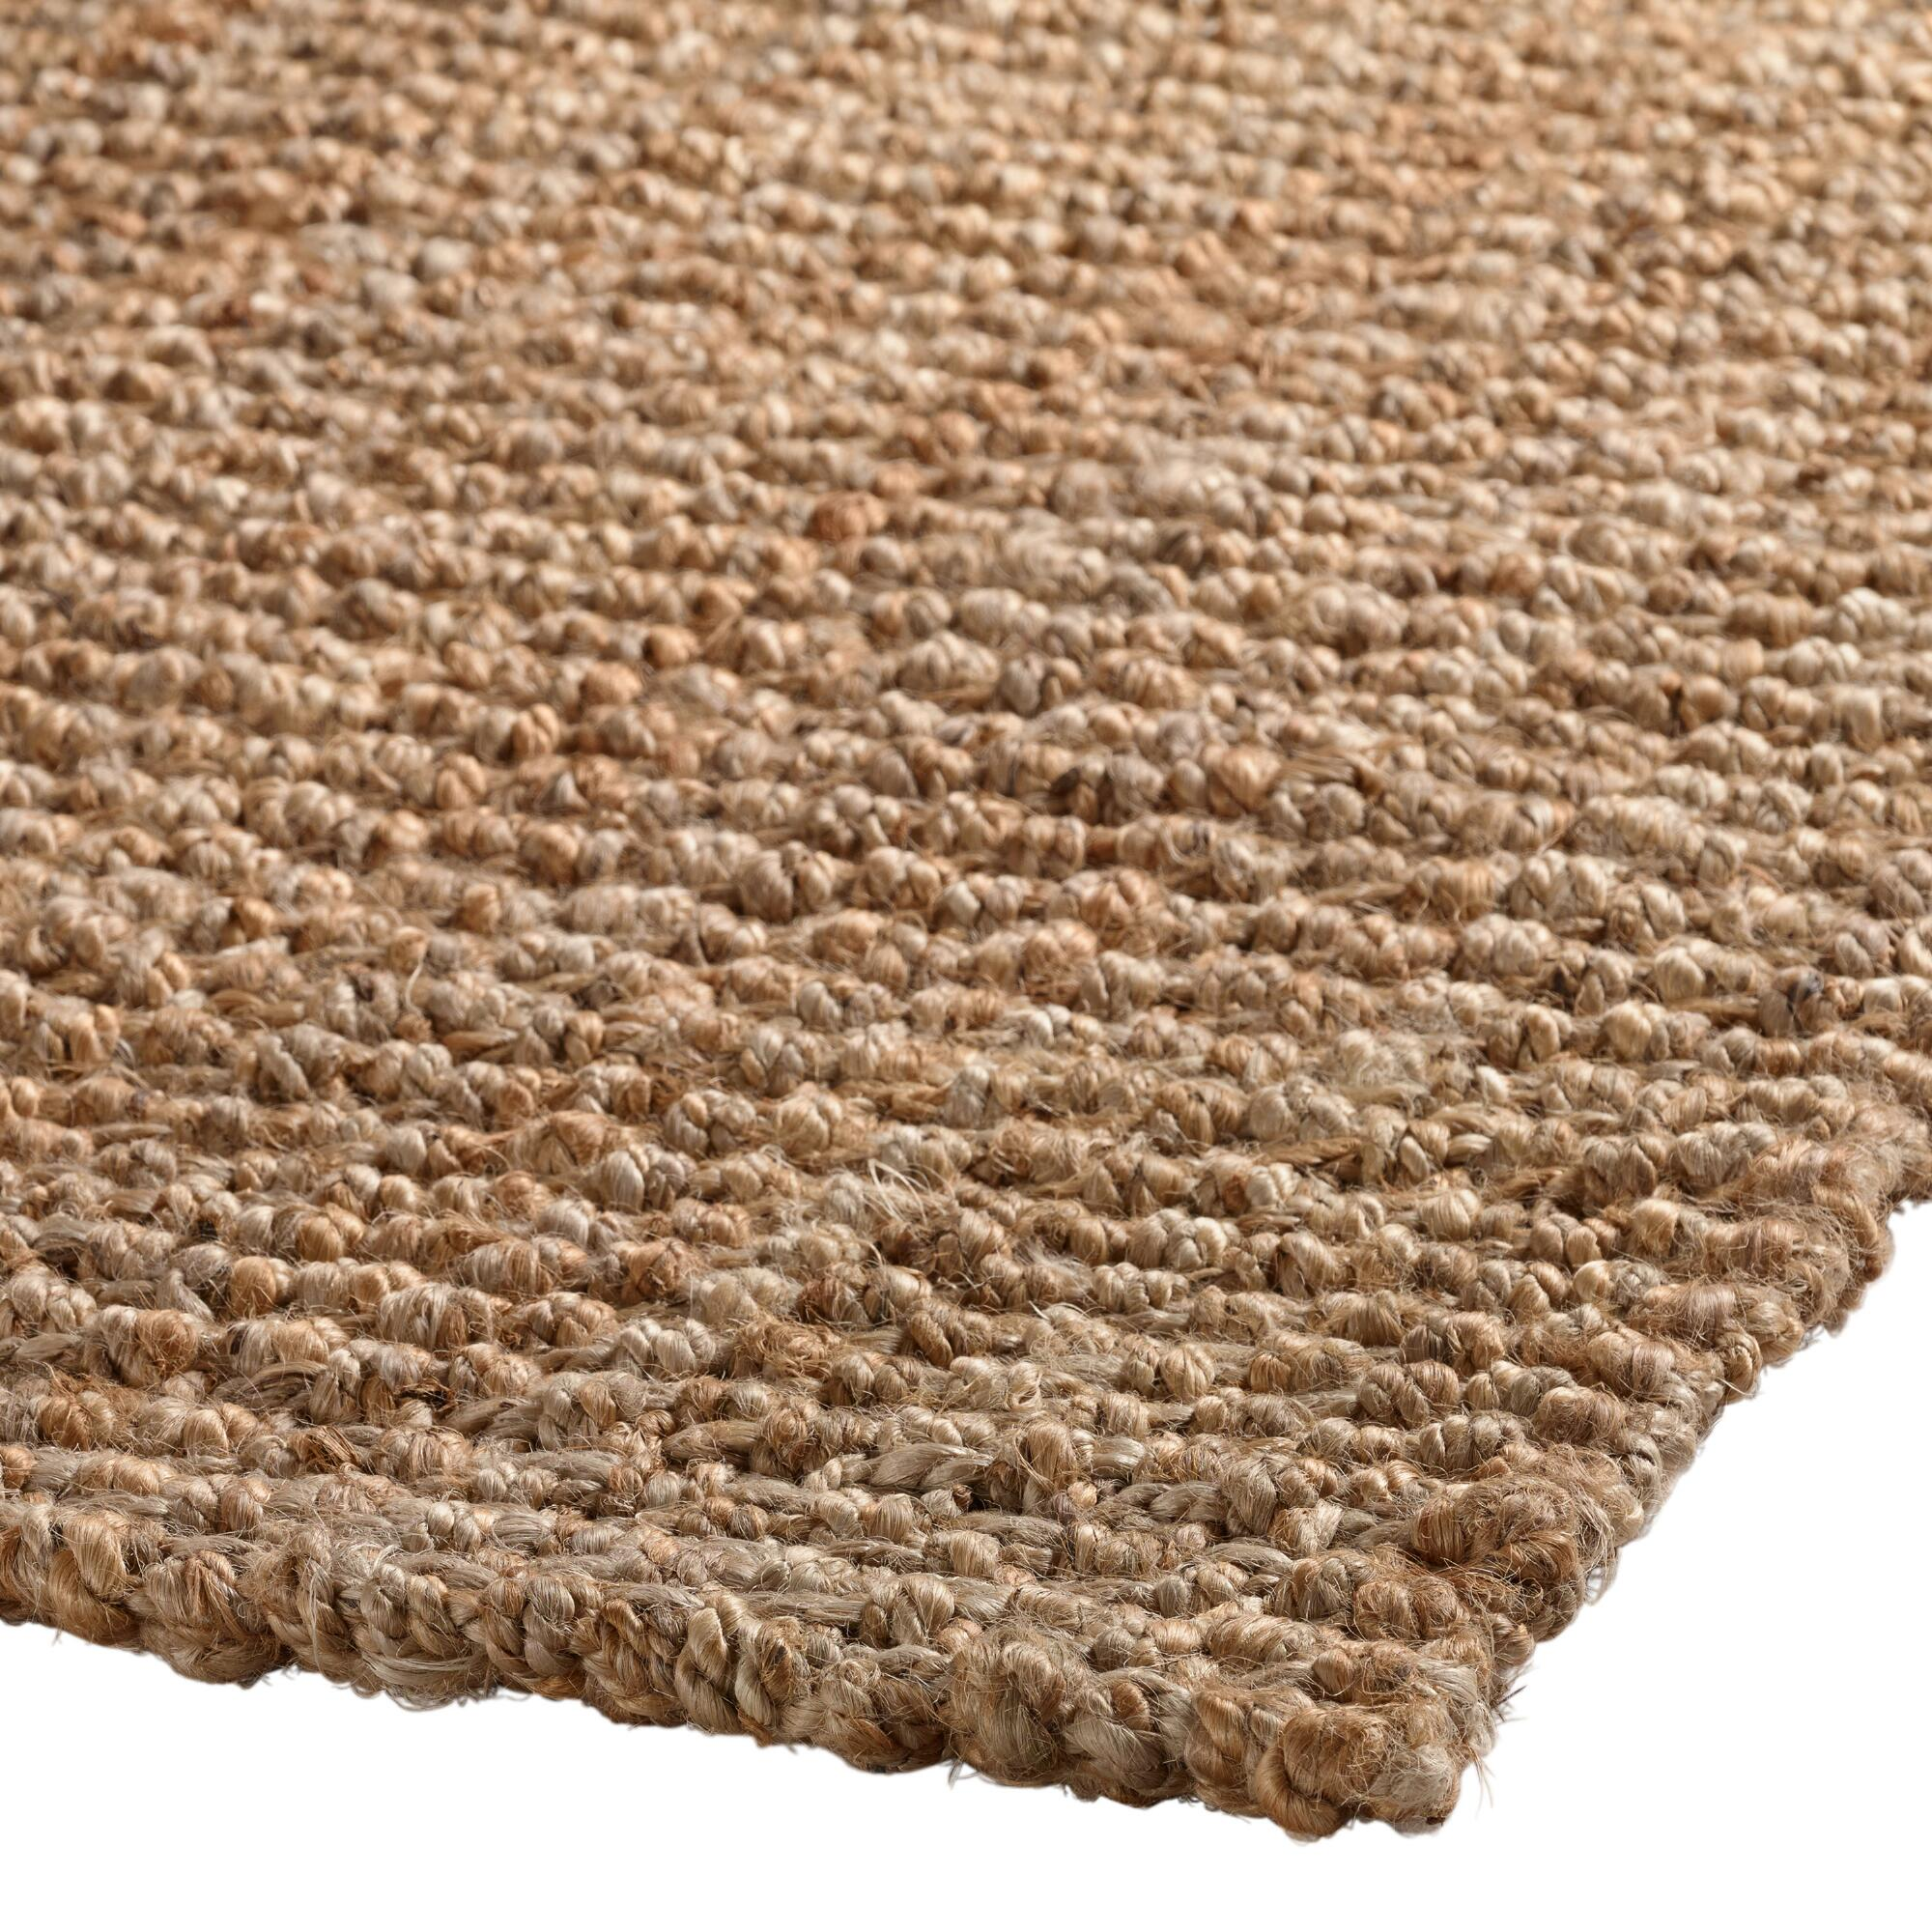 natural rug carpet carpets chucky fitters rugs hemp cape town jute flooring